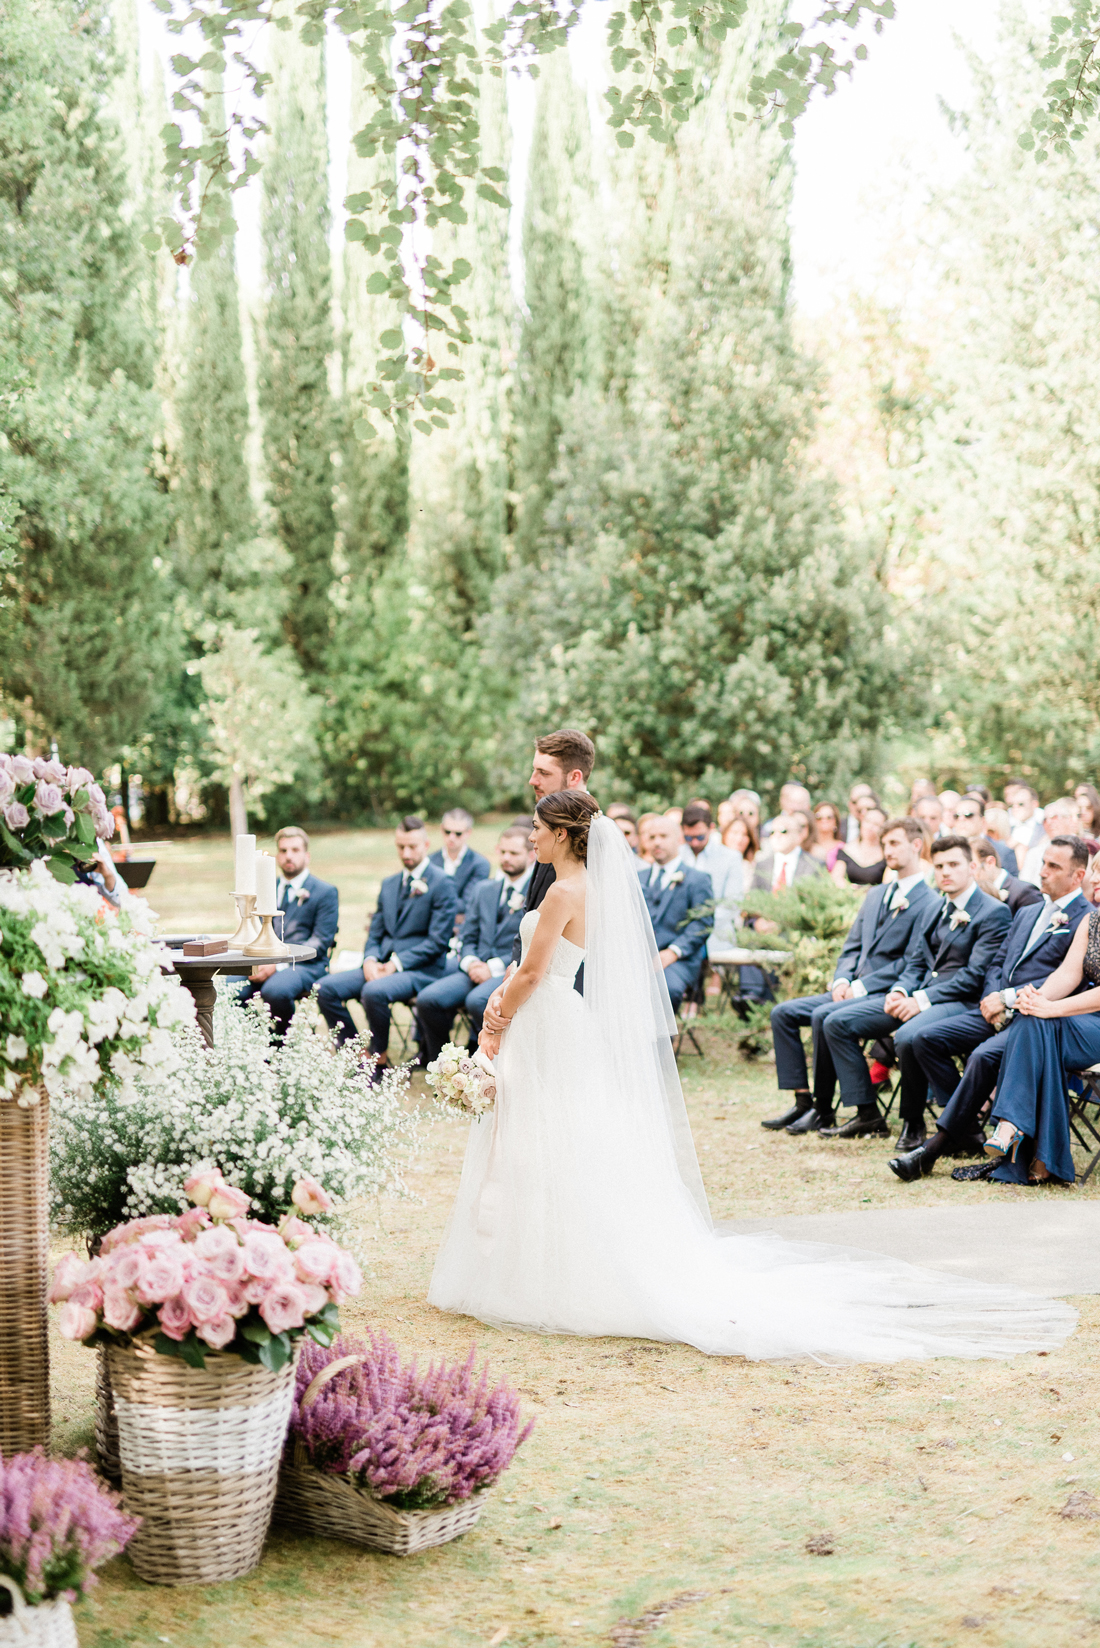 What's the Ideal Ceremony Start Time for a Summer Wedding?